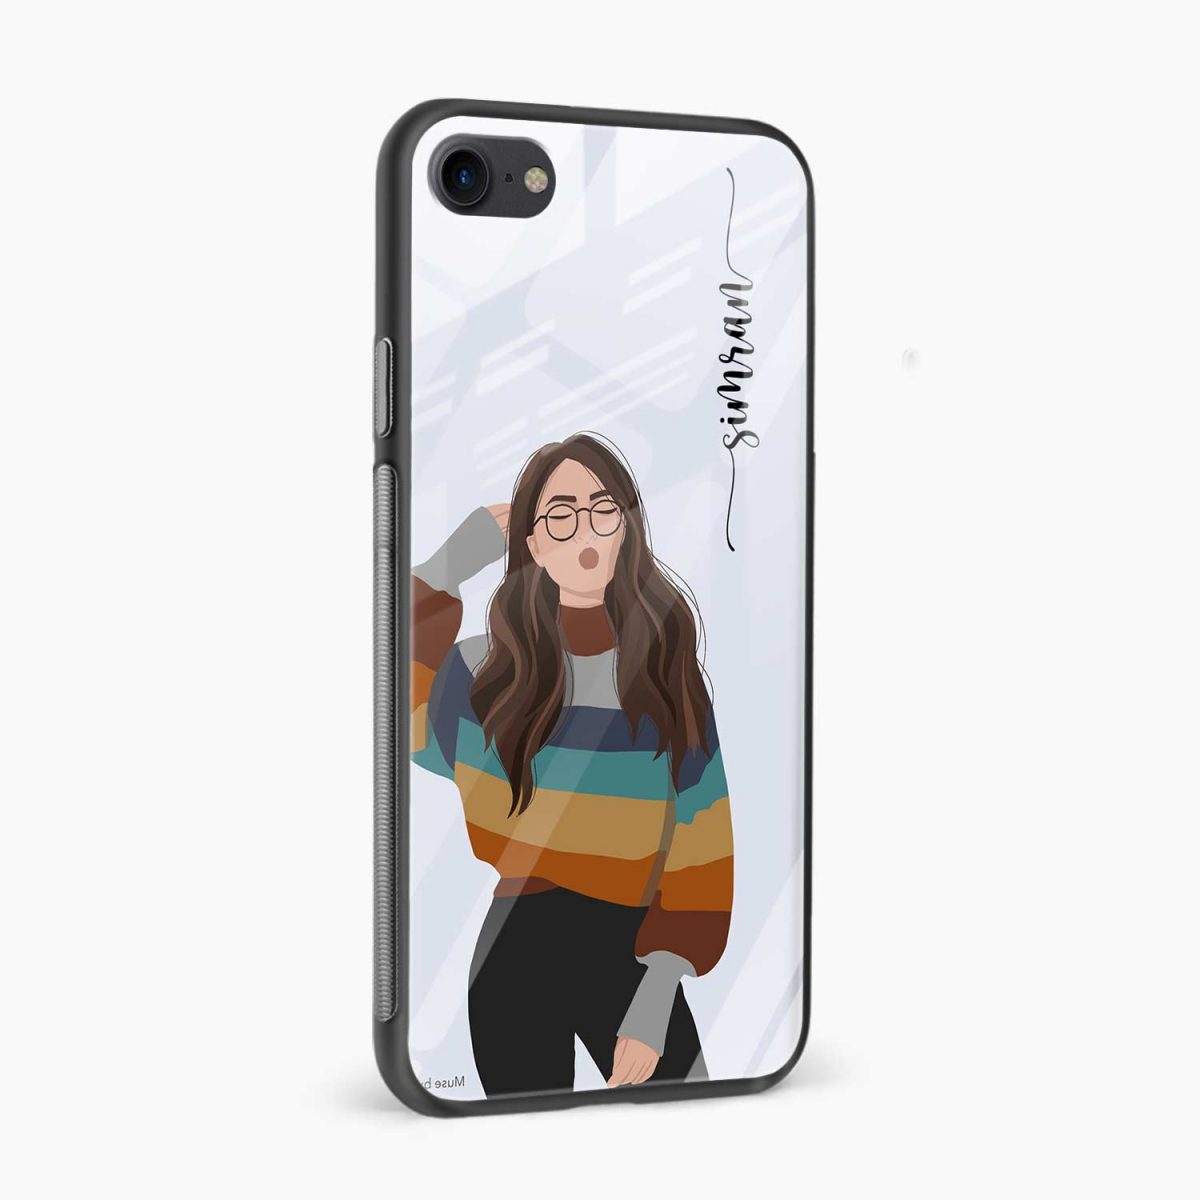 its me side view apple iphone 6 7 8 se back cover